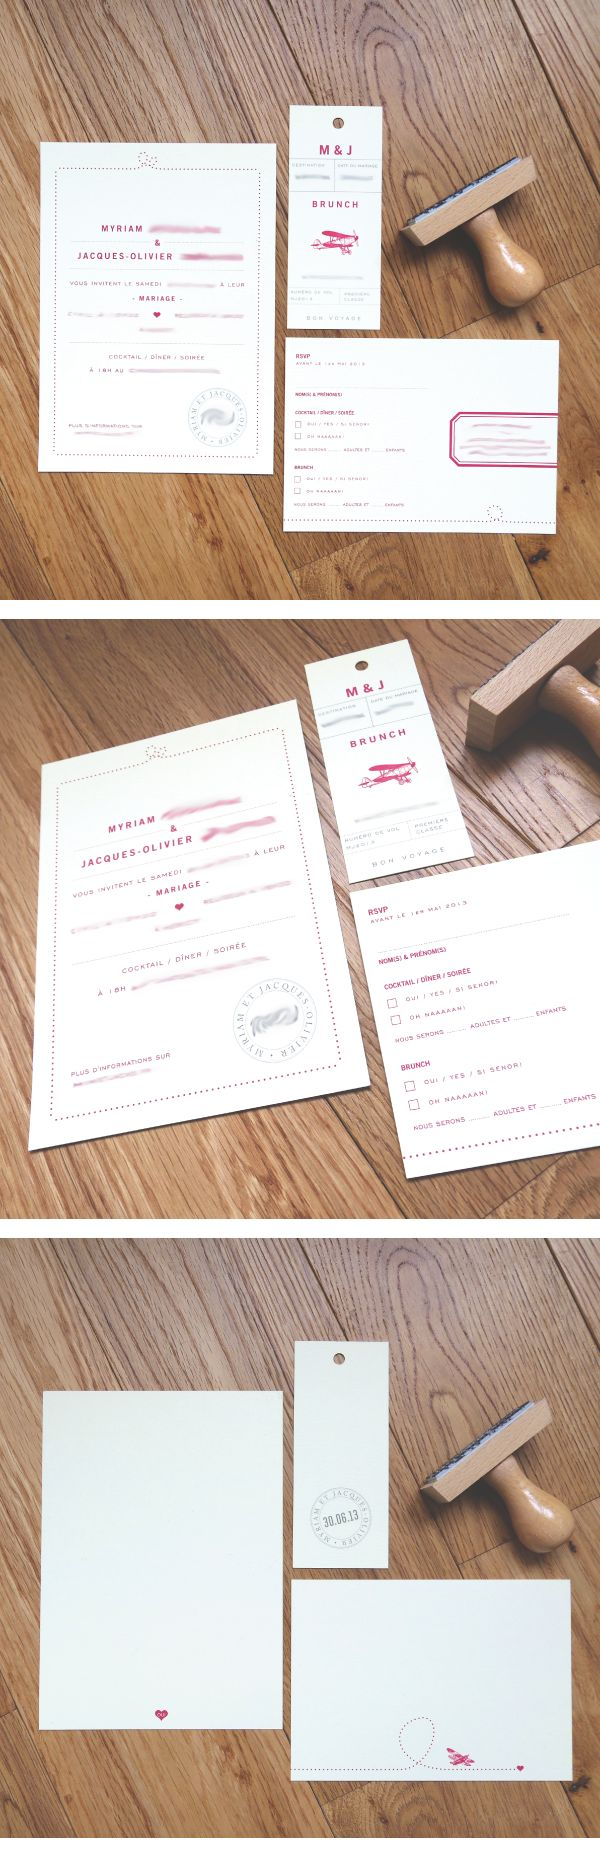 10 Best Mike Amy S Wedding Images On Pinterest Invitation Ideas